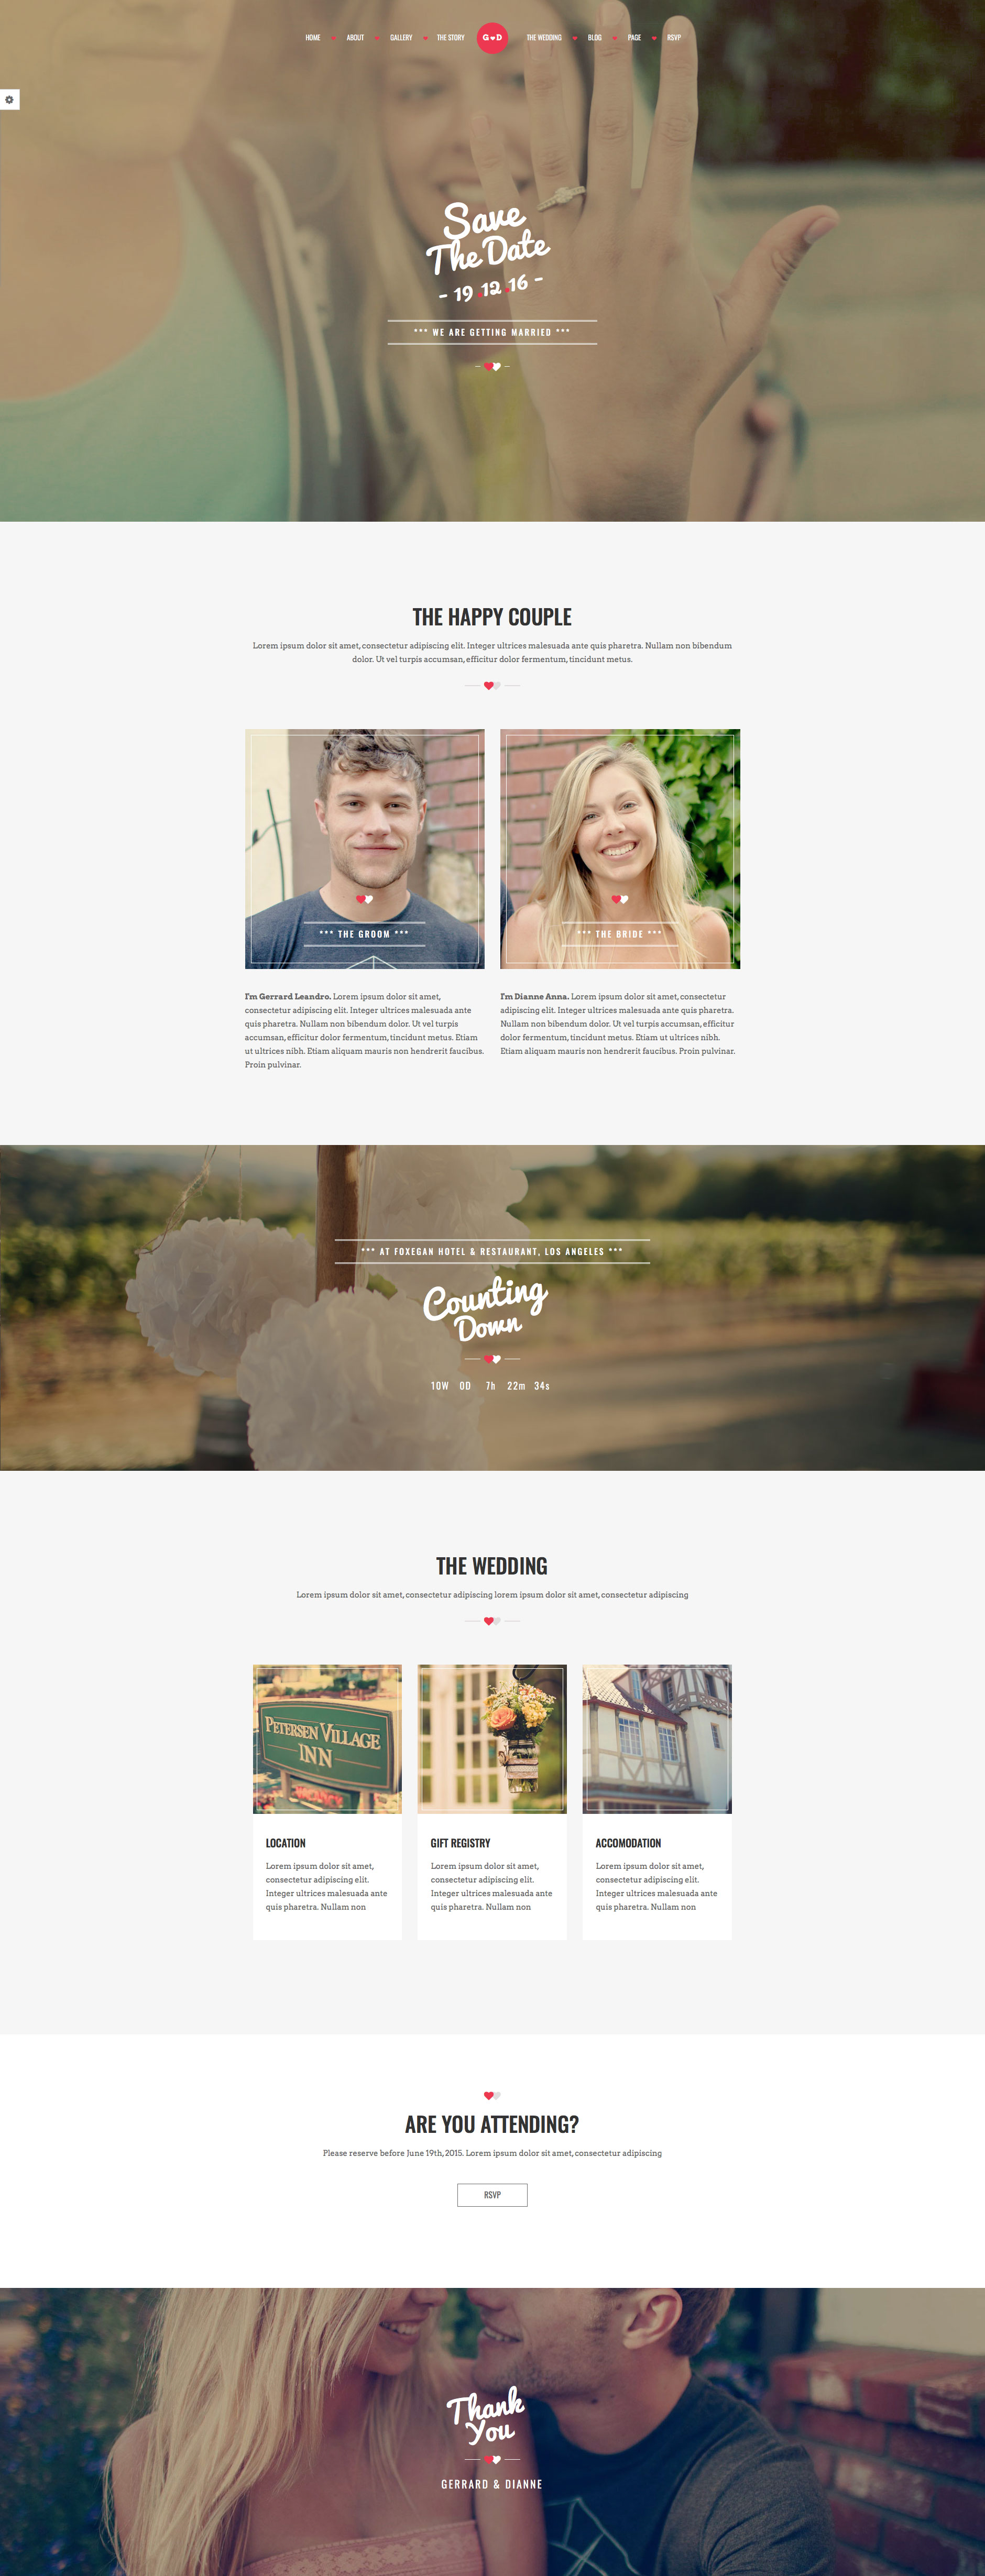 FOREVER is a clean and elegant responsive HTML5 wedding website template, the best choice for wedding invitation or engagement websites. It features Countdown, Couple Timeline, Location Map and many others. FOREVER wedding template is fully responsive and based on the popular Bootstrap framework.